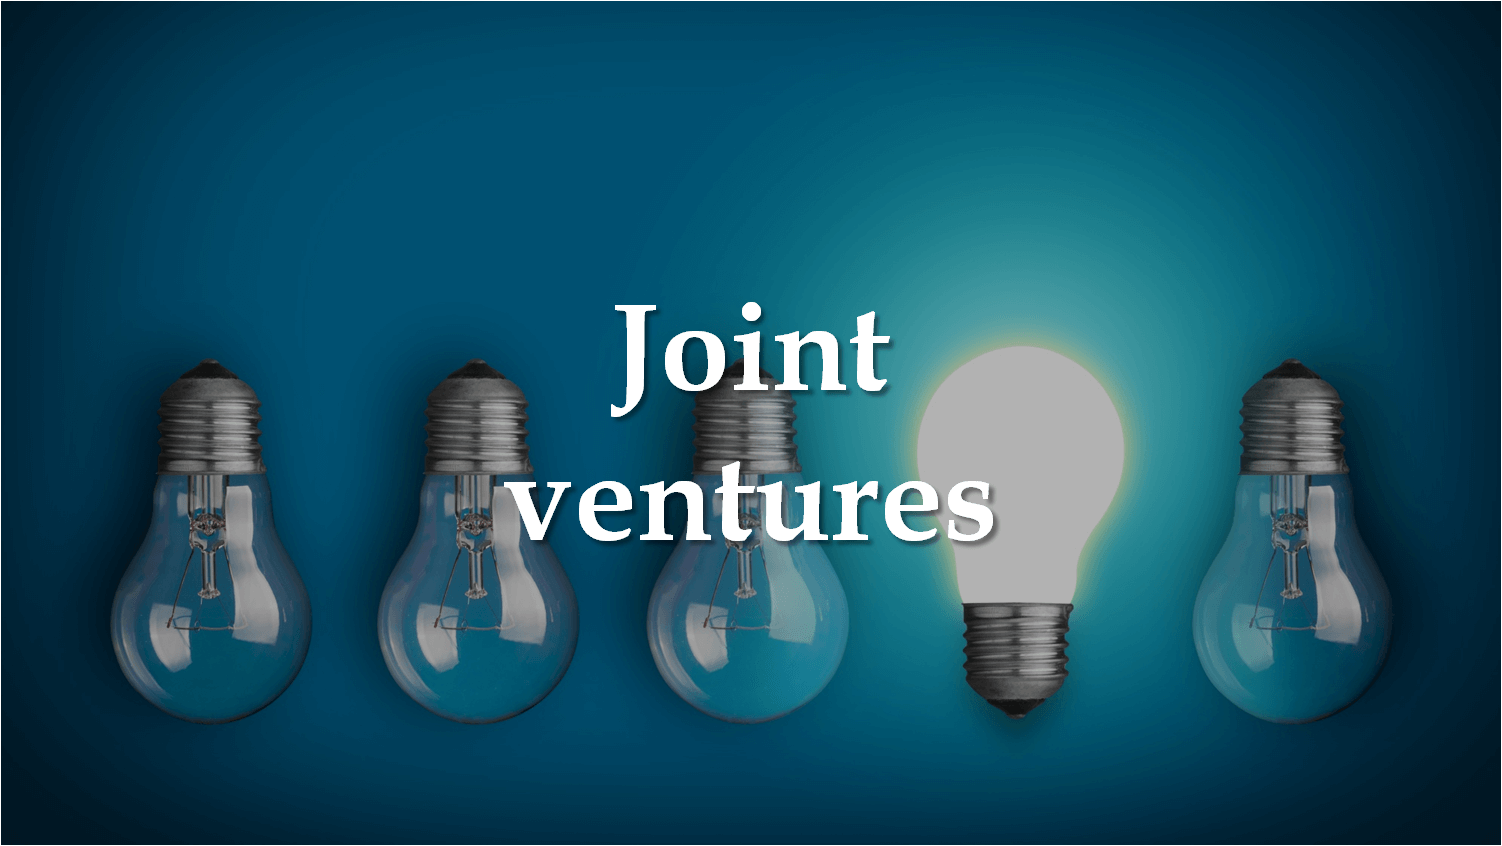 merger and acquisition joint ventures The art of joint-venture, mergers & acquisitions in china china is the world's second largest economy and the world's largest and most attractive many multinational corporations entered the market via joint-venture, m&a and have made long-term successes in china by far, there are.